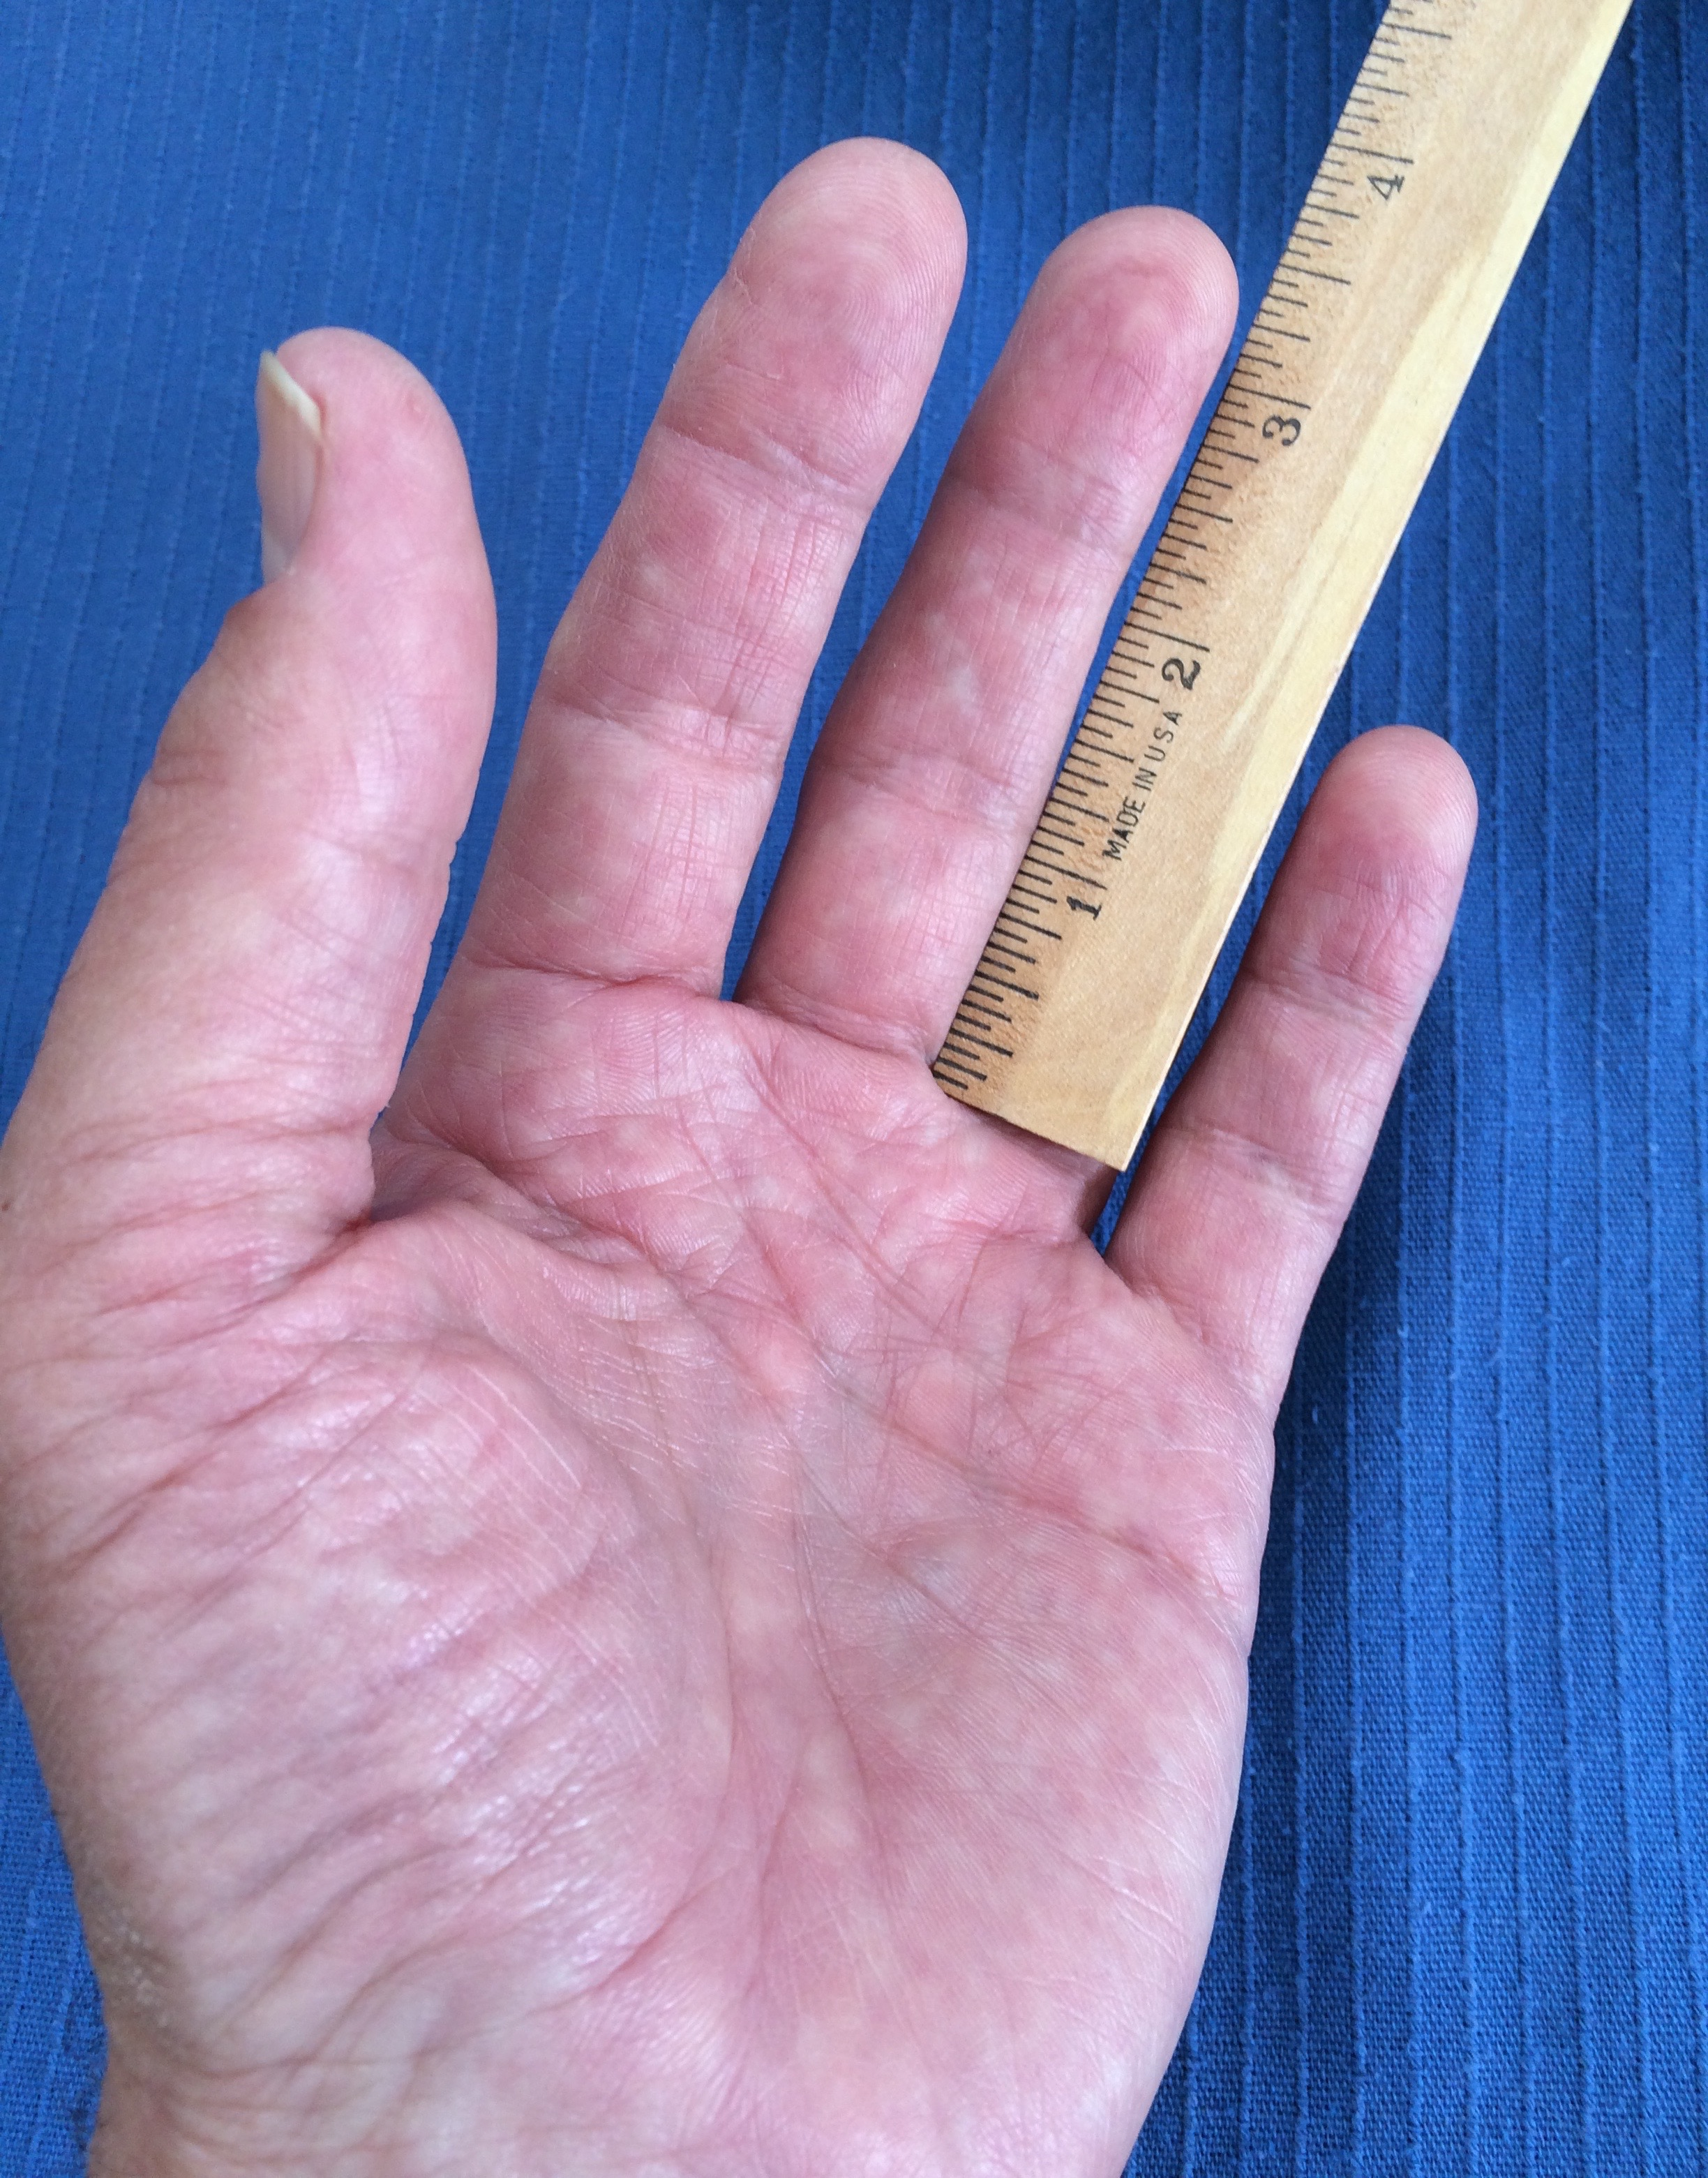 How to measure for the correct size. This hand would need size L since the fingertip is reading 3-5/8 inches (9.21 cm)